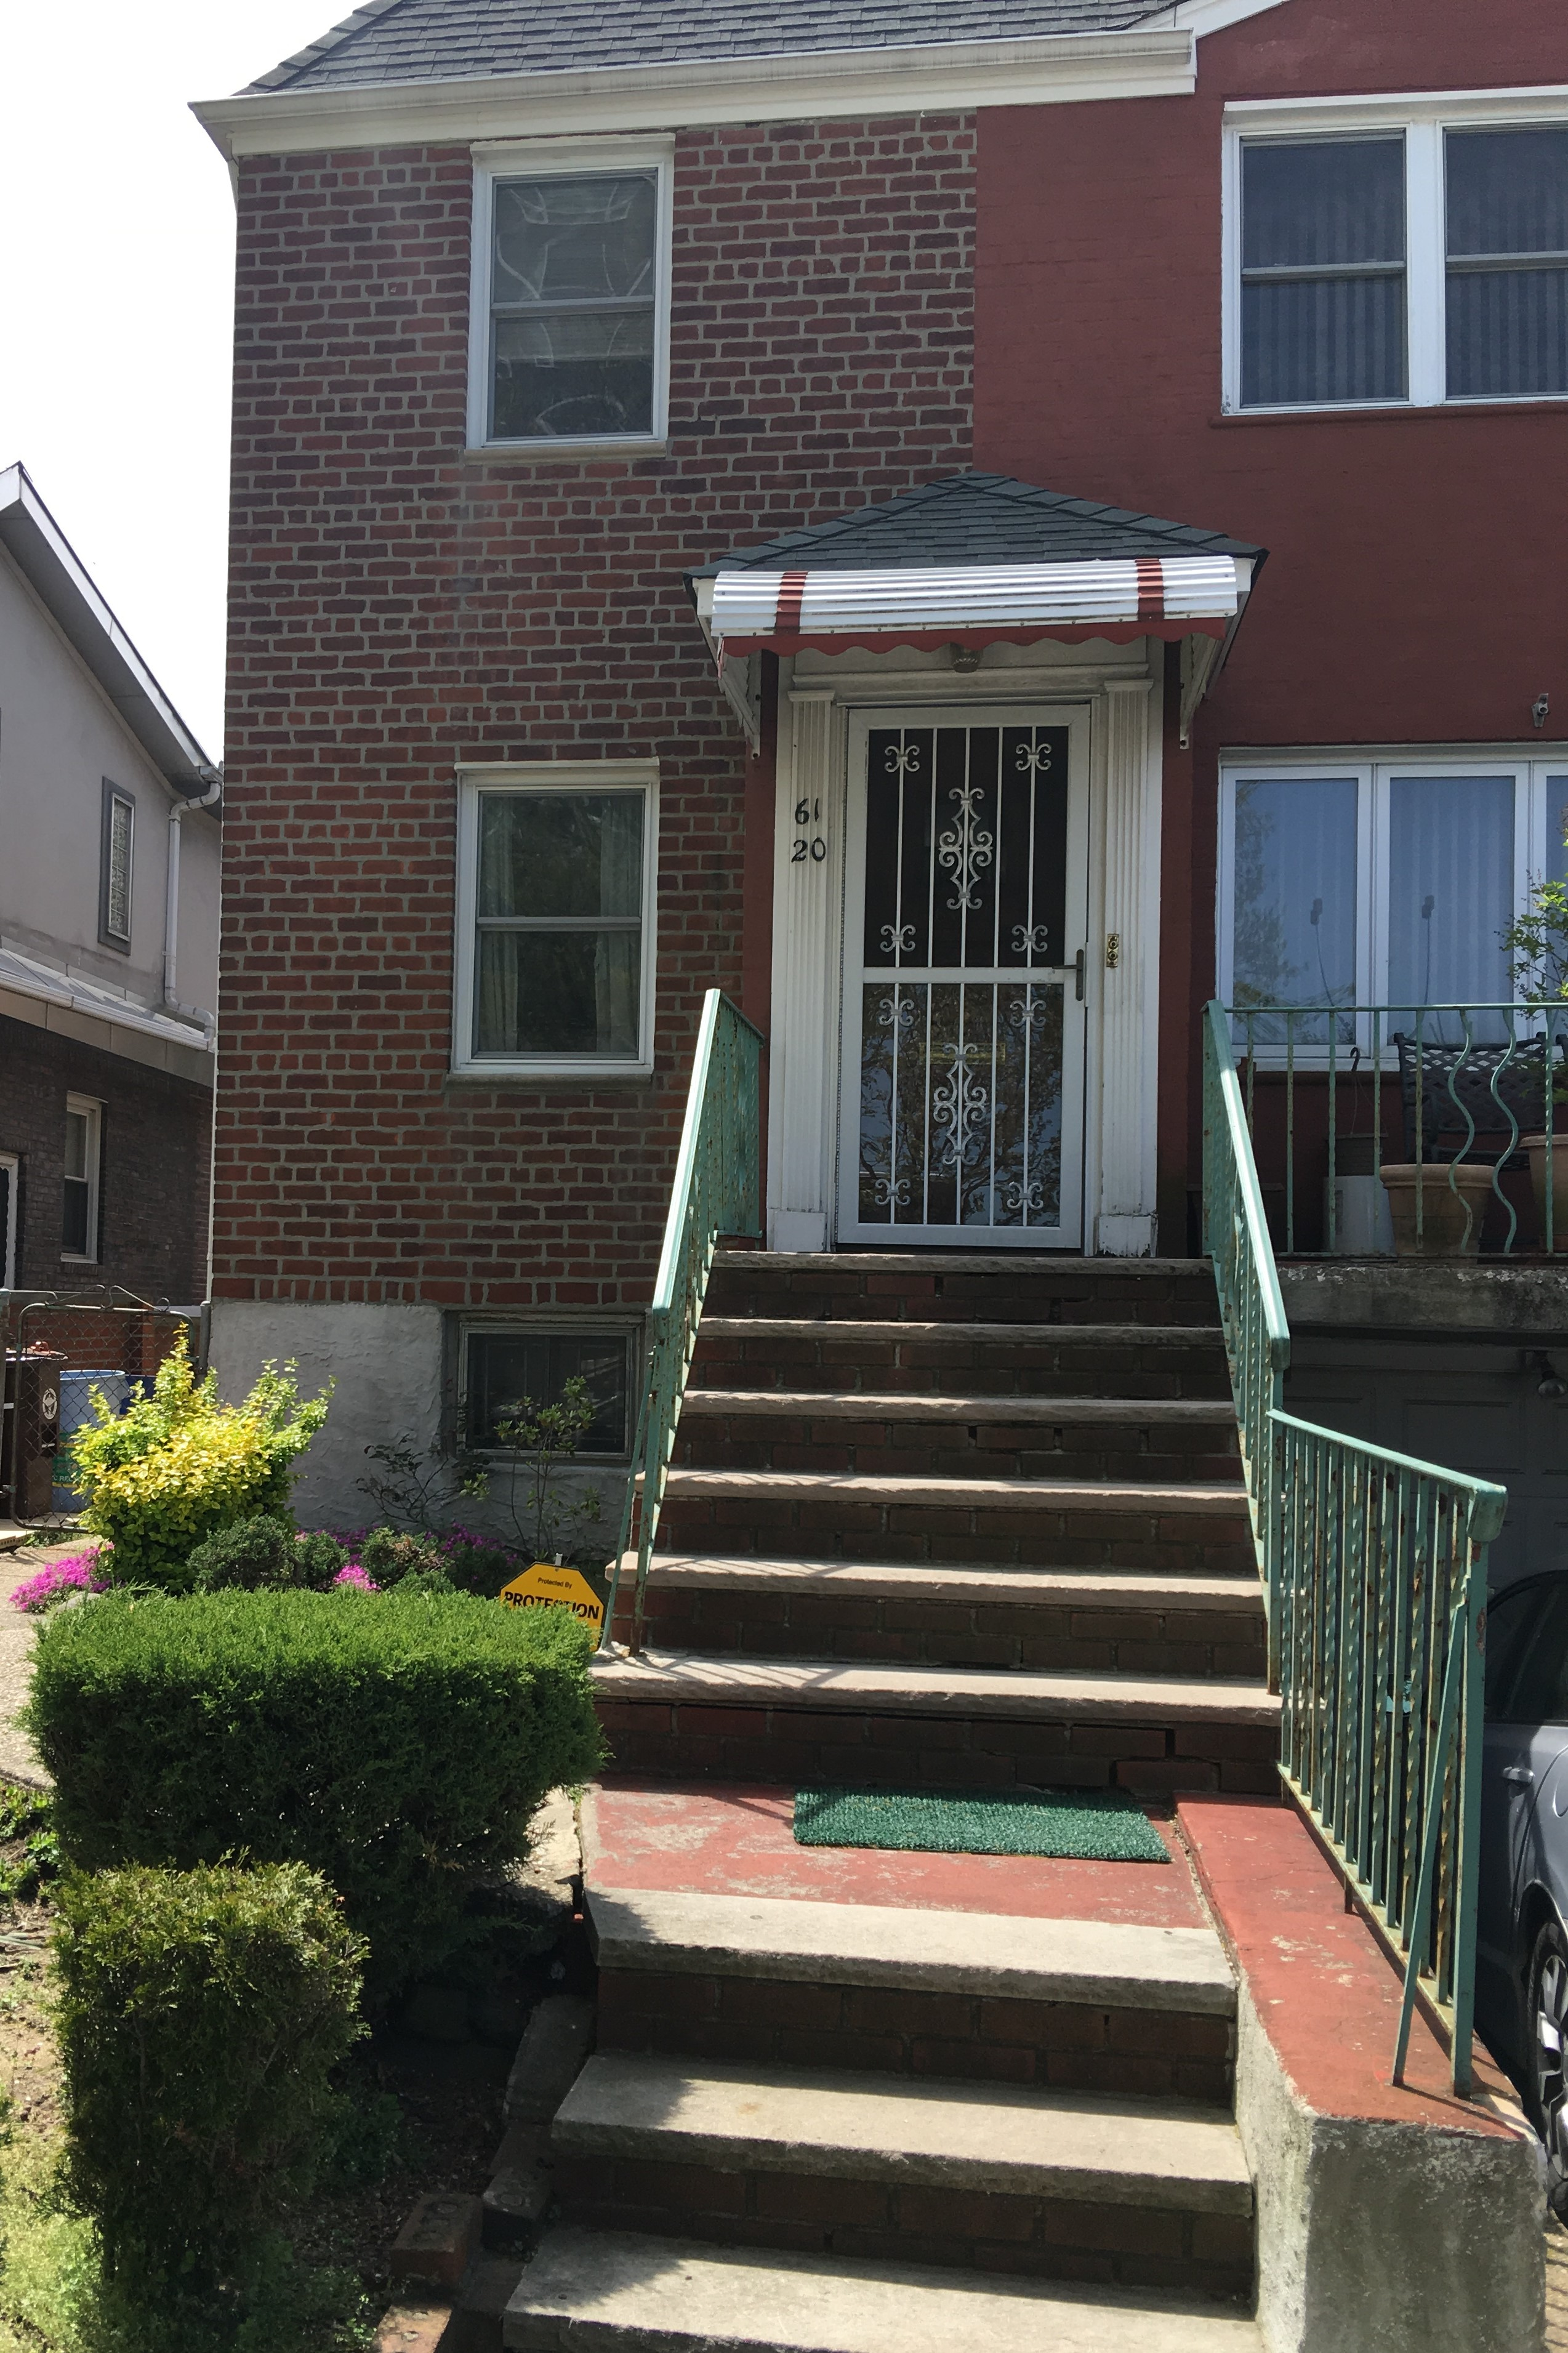 Spacious Apartment for Rent. Features Living Room, Dining Area, Kitchen, Master Bedroom w/ Half Bath and Walk-In-Closet, 2 Additional Bedrooms and 1 Full Bath. Convenient to Shopping and Buses.